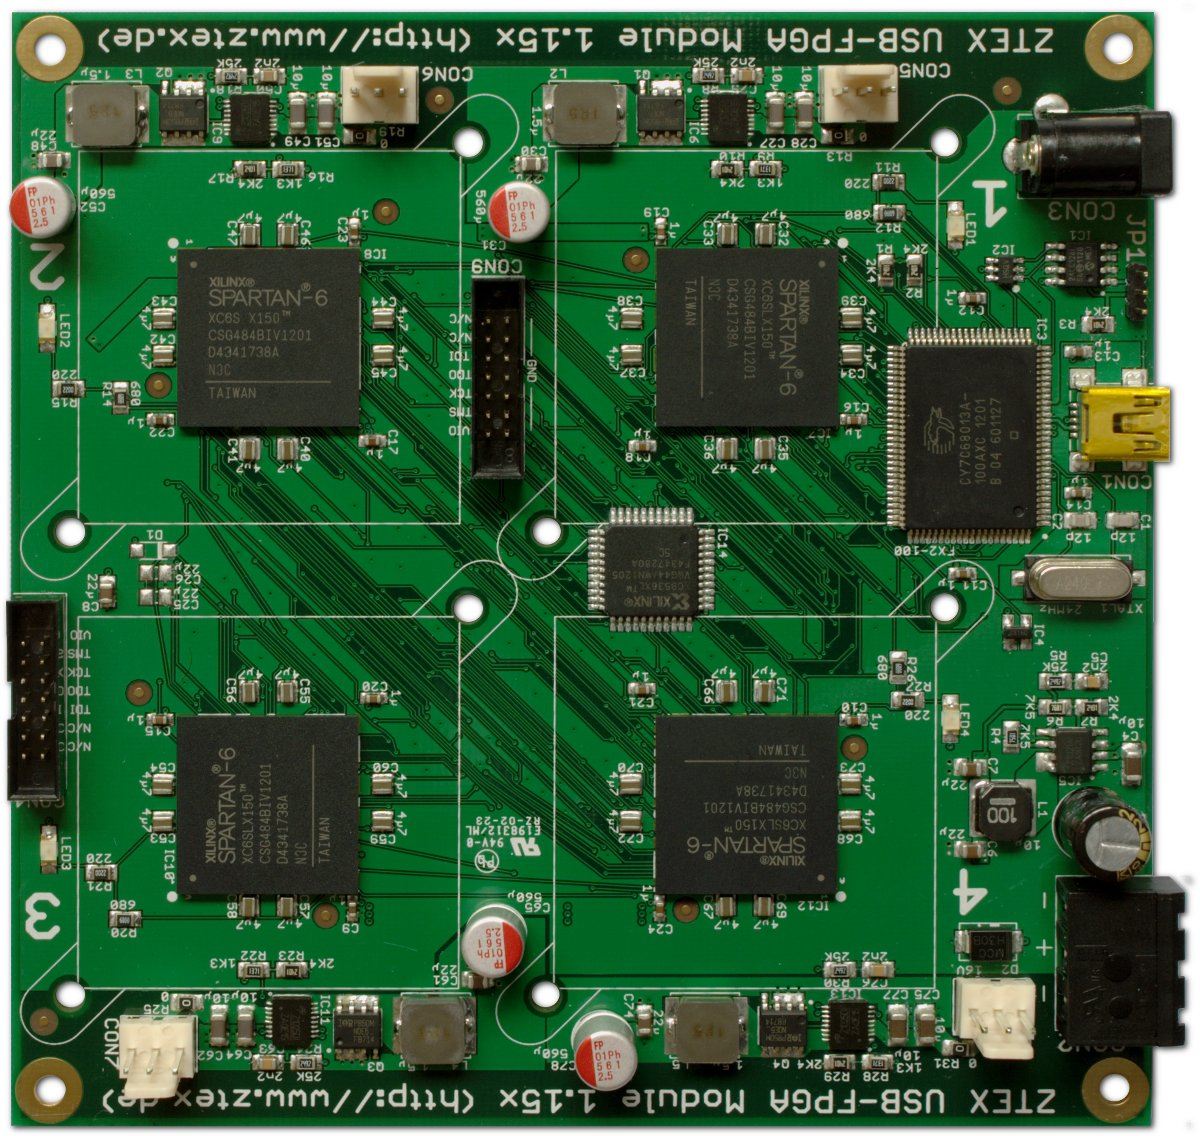 ZTEX FPGA Boards for Bitcoin Mining - Bitcoin Wiki